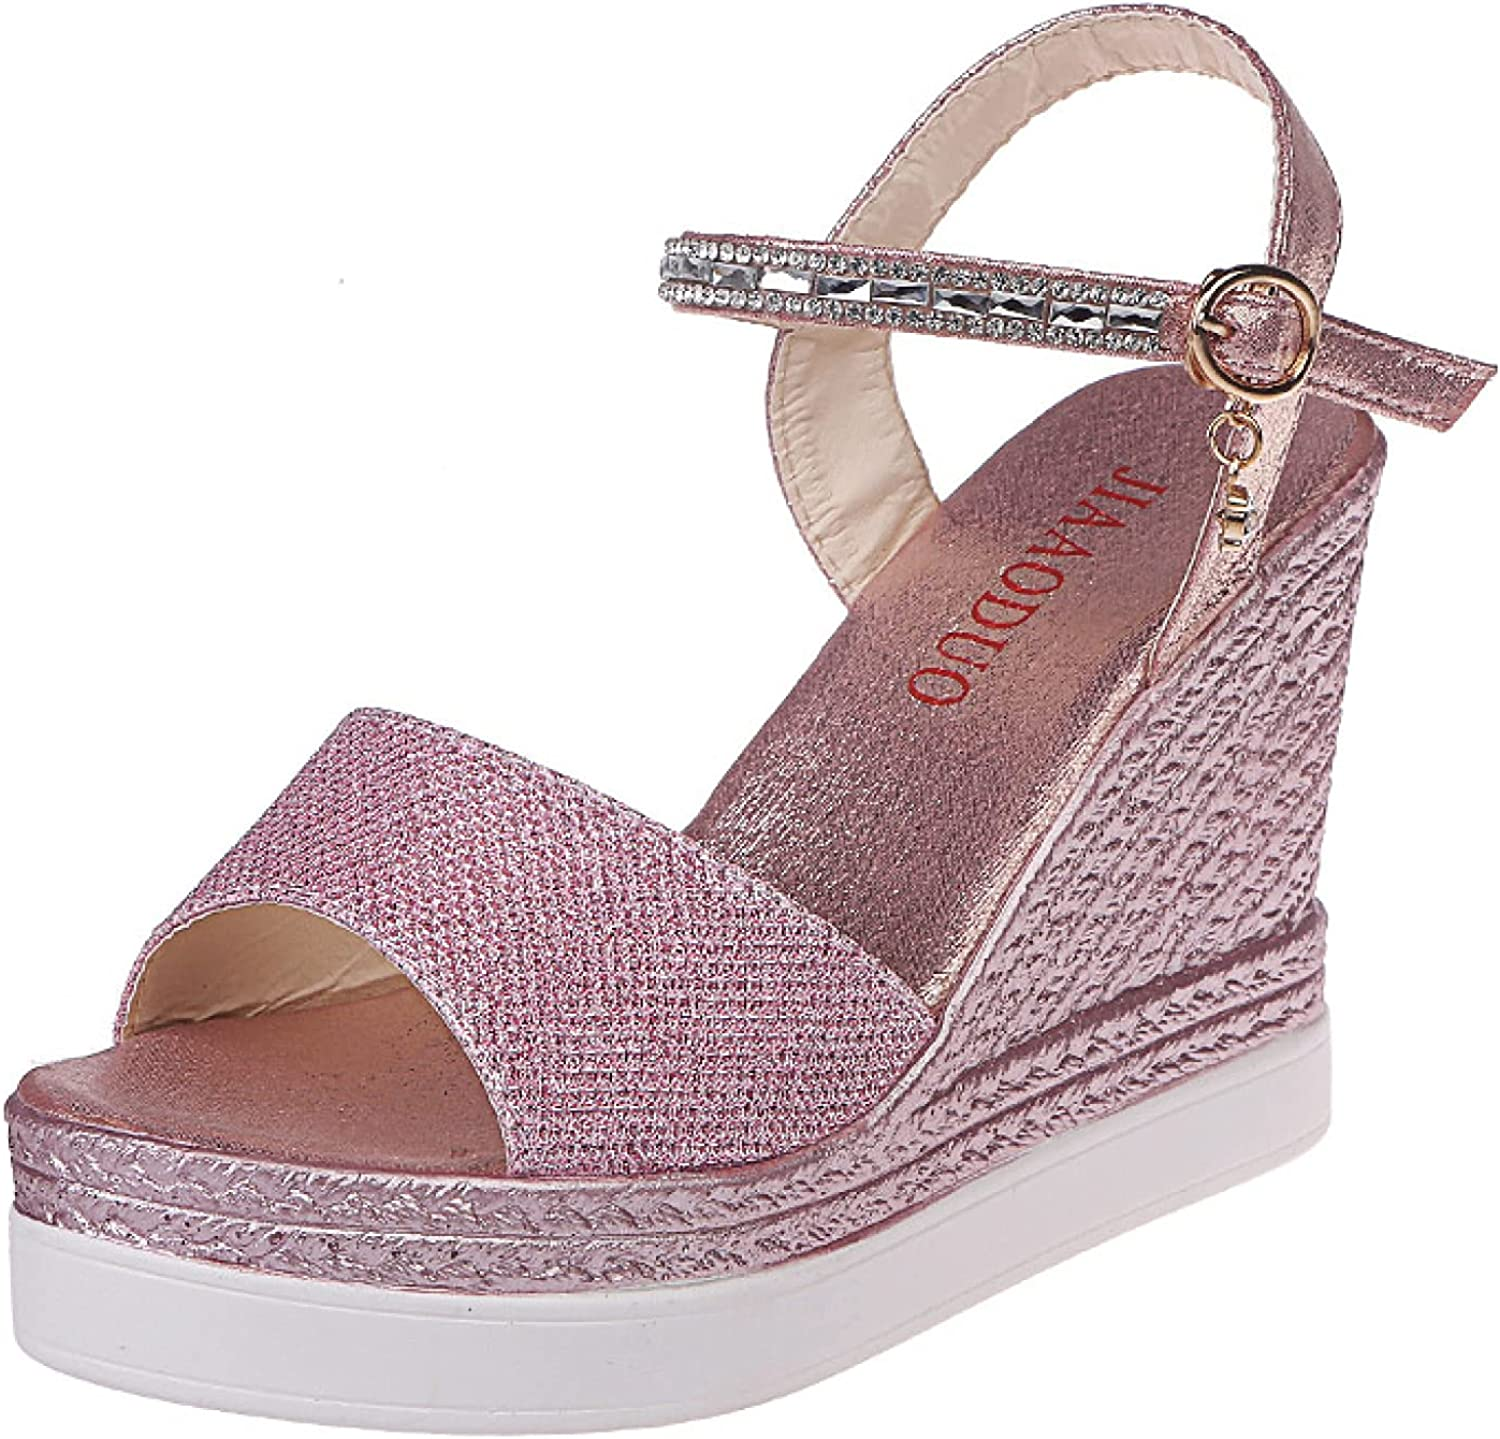 Women's Wedges Heel 2021new shipping free Sandals Party Popular shop is the lowest price challenge Strap Fine Co Rhinestone Flash